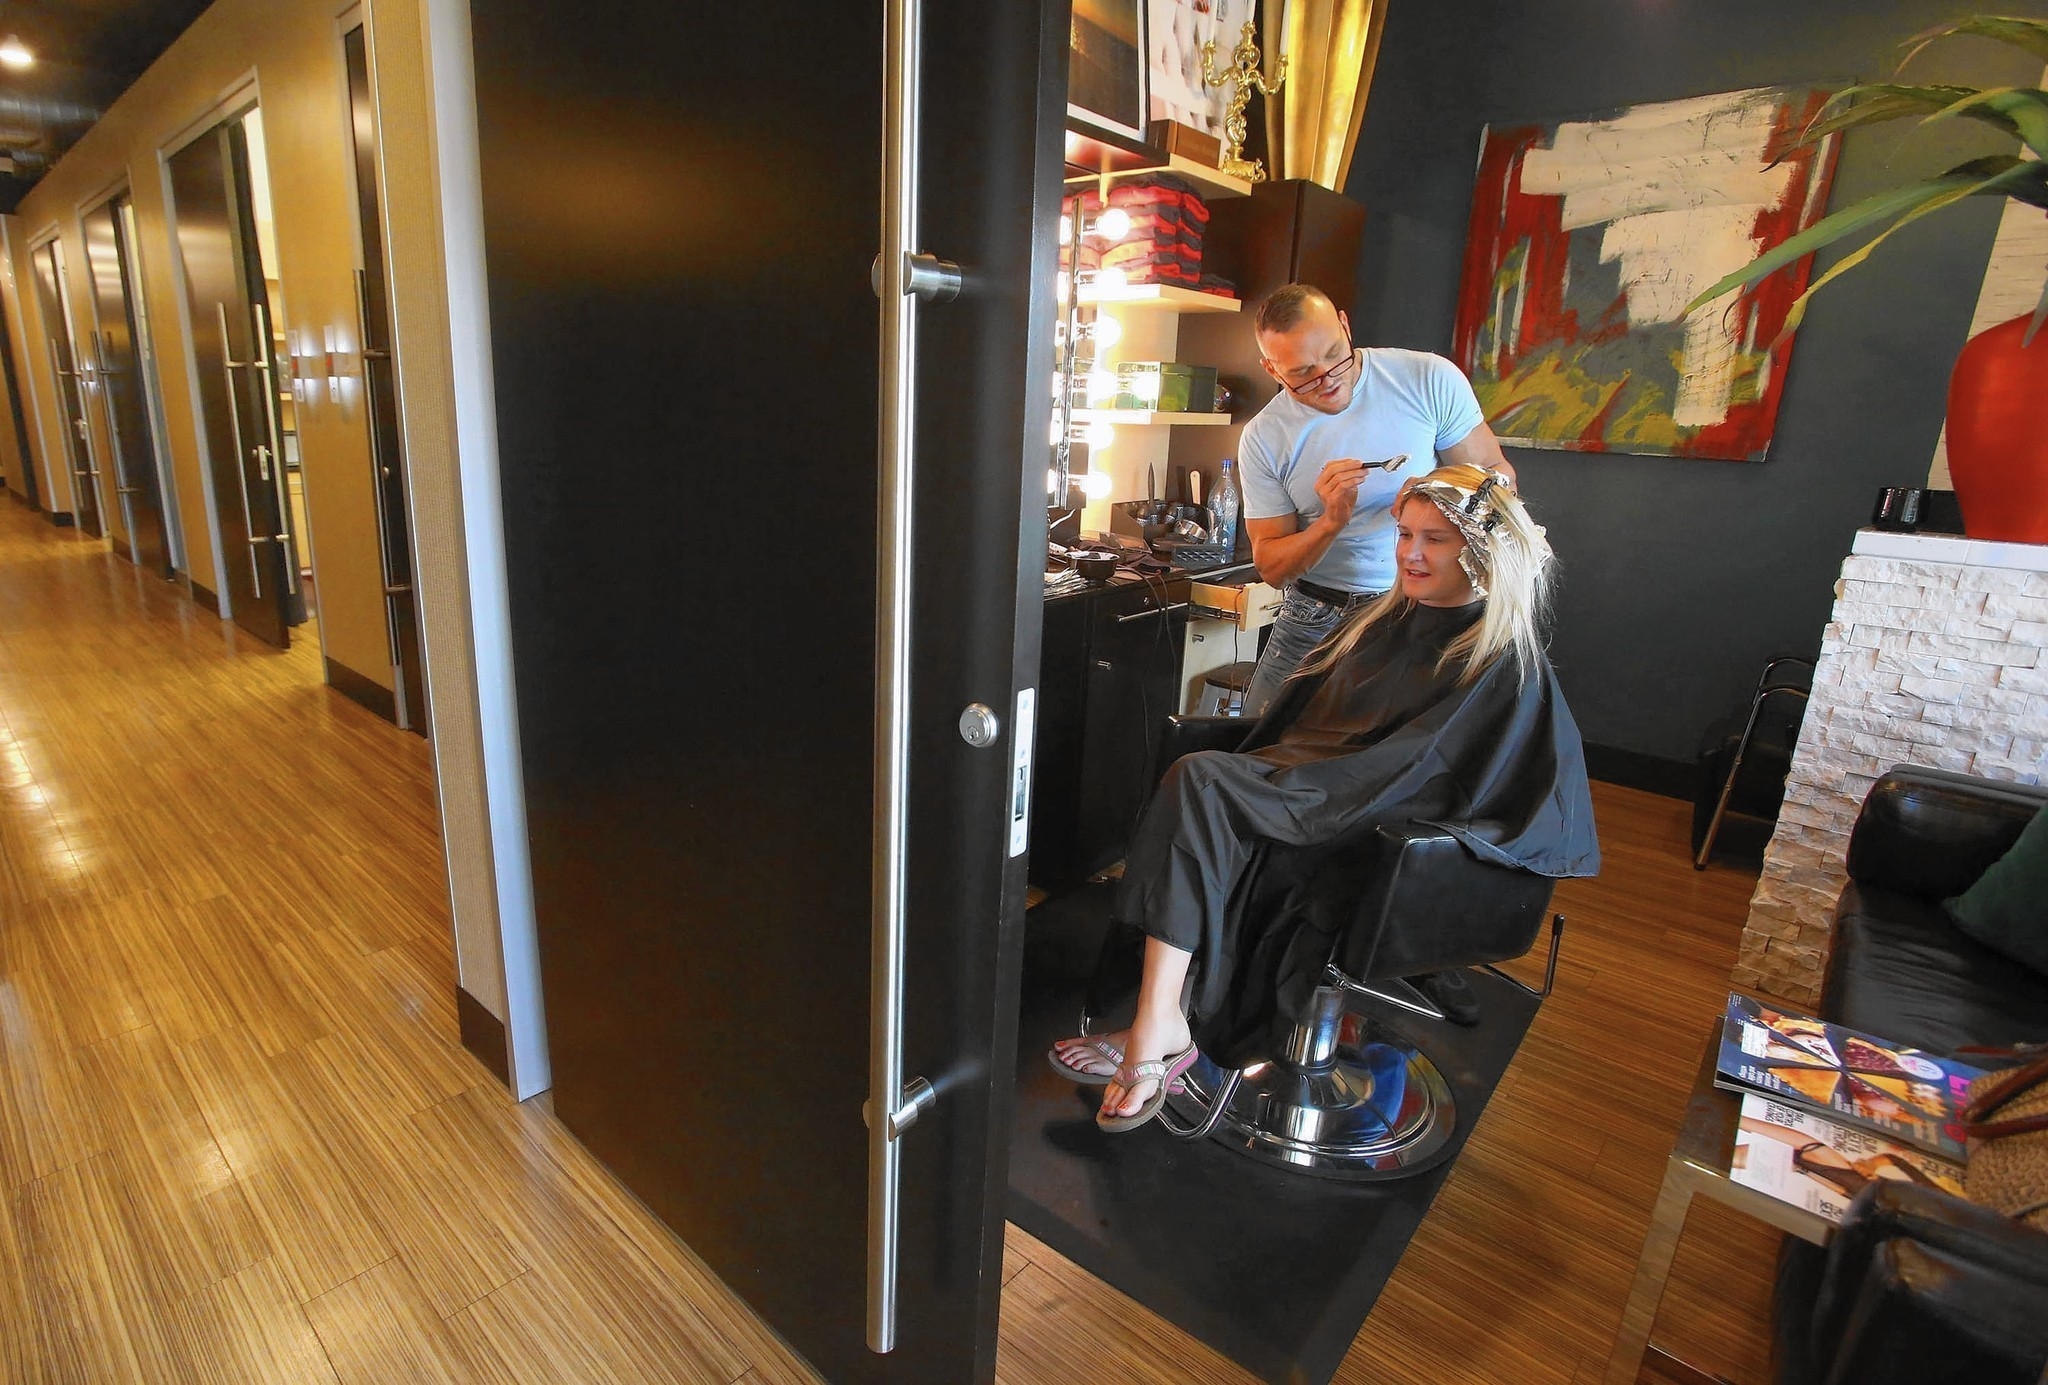 small  personalized salons are emerging trend in central